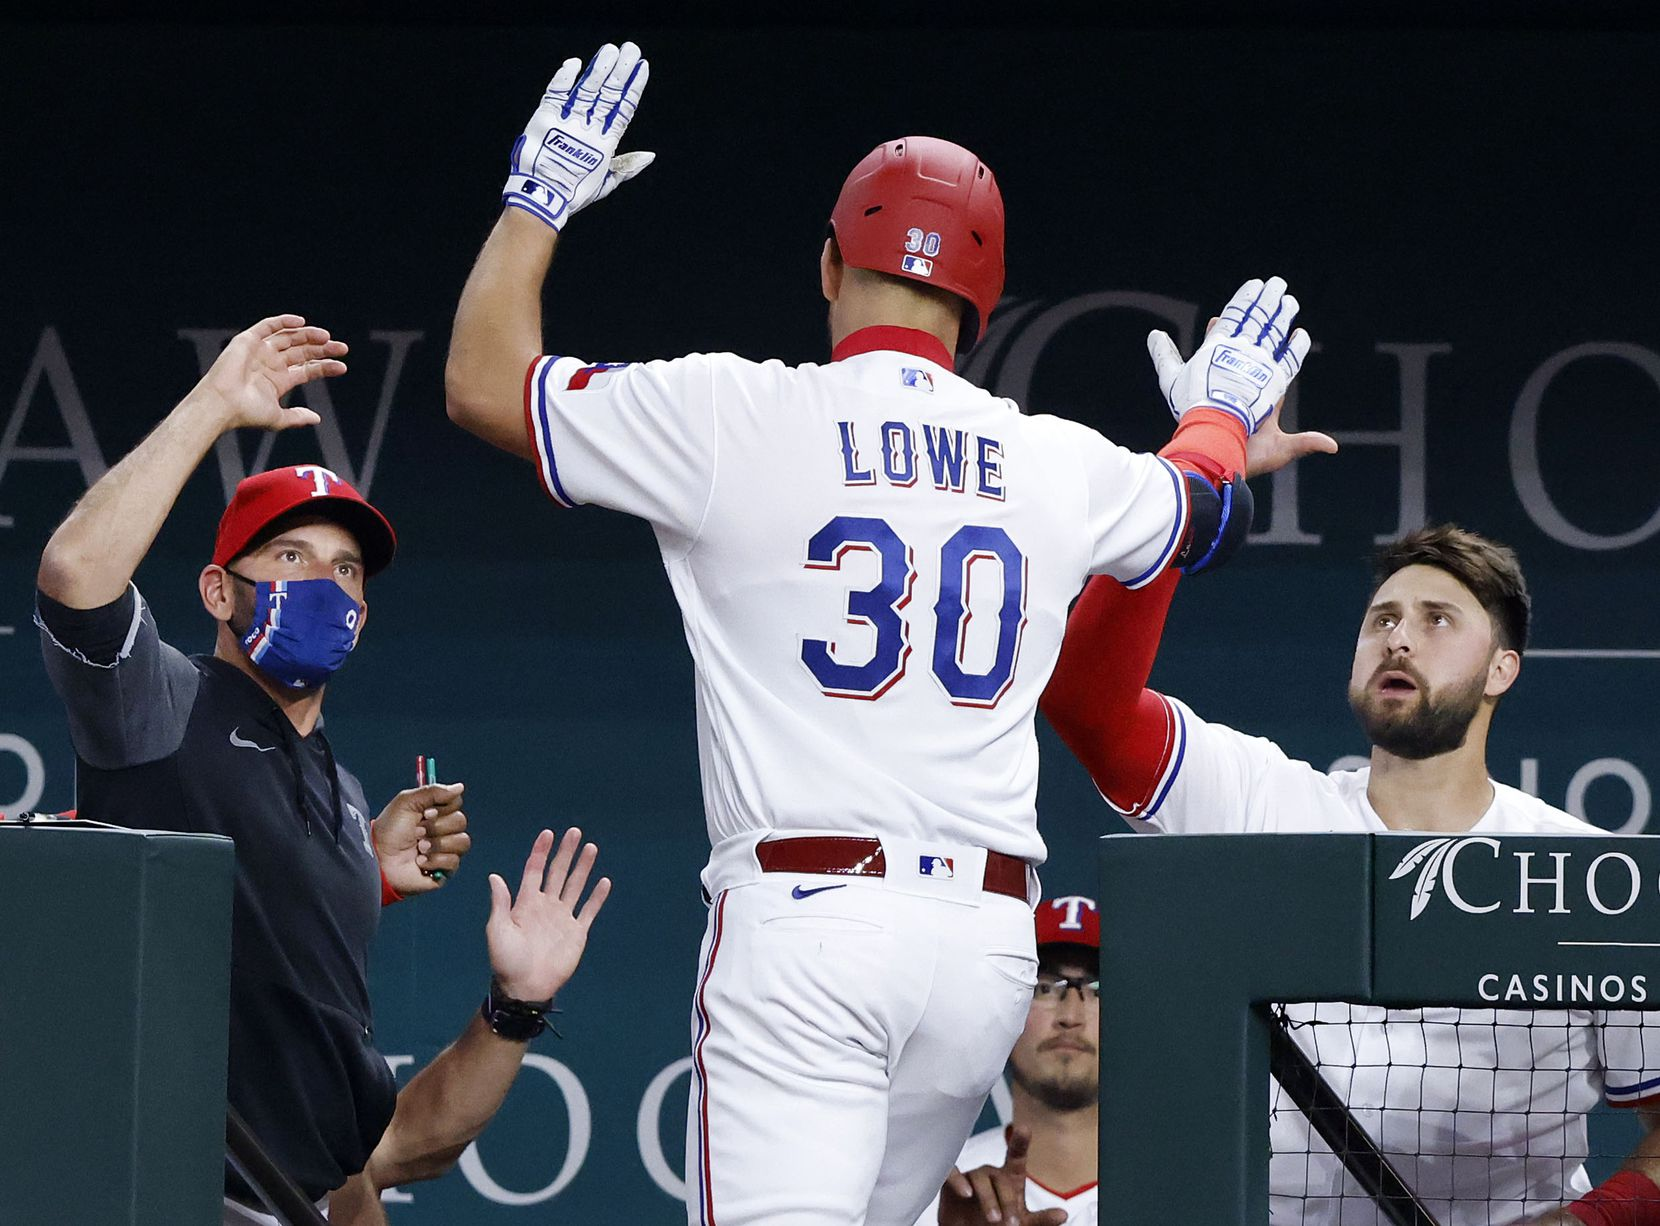 Texas Rangers Nate Lowe (30) is congratulated by teammate Joey Gallo (right) and manager Chris Woodward (left) after hitting a home run during first inning against the Toronto Blue Jays at Globe Life Field in Arlington, Tuesday, April 7, 2021. Loew scored Isiah Kiner-Falefa from third. (Tom Fox/The Dallas Morning News)